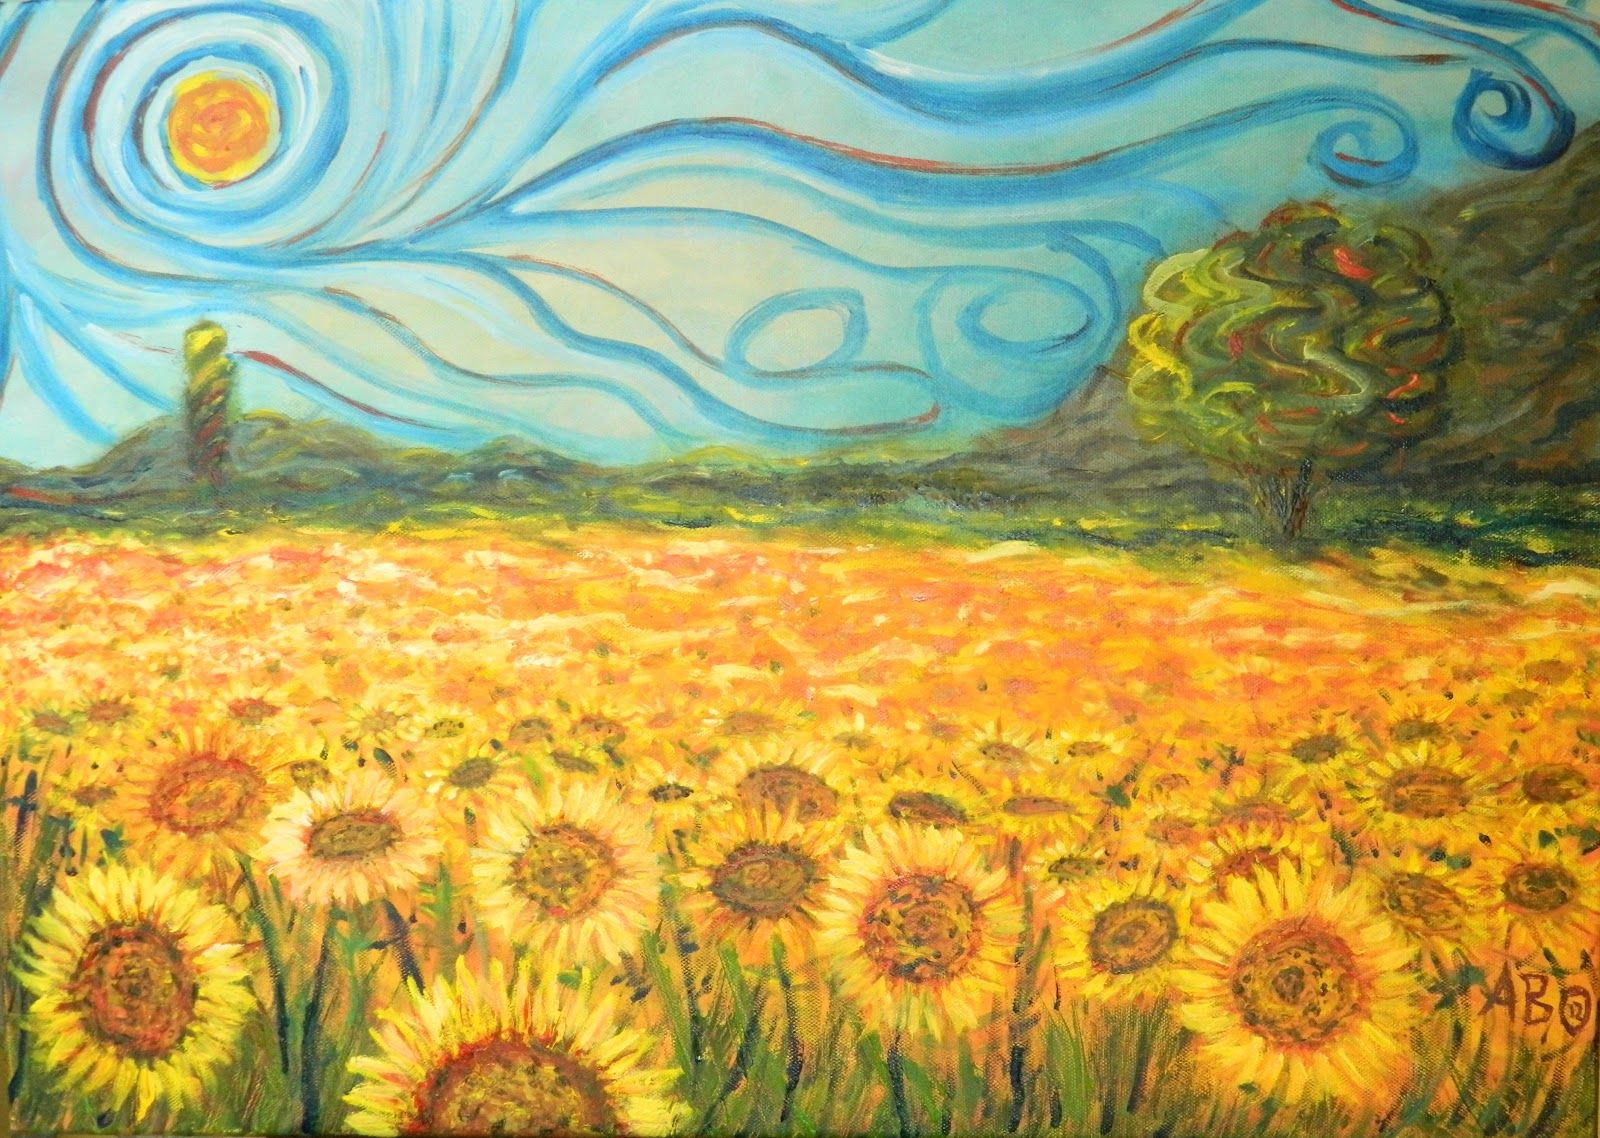 Cuadro De Los Girasoles Van Gogh Obras Buscar Con Google Paintings I Love